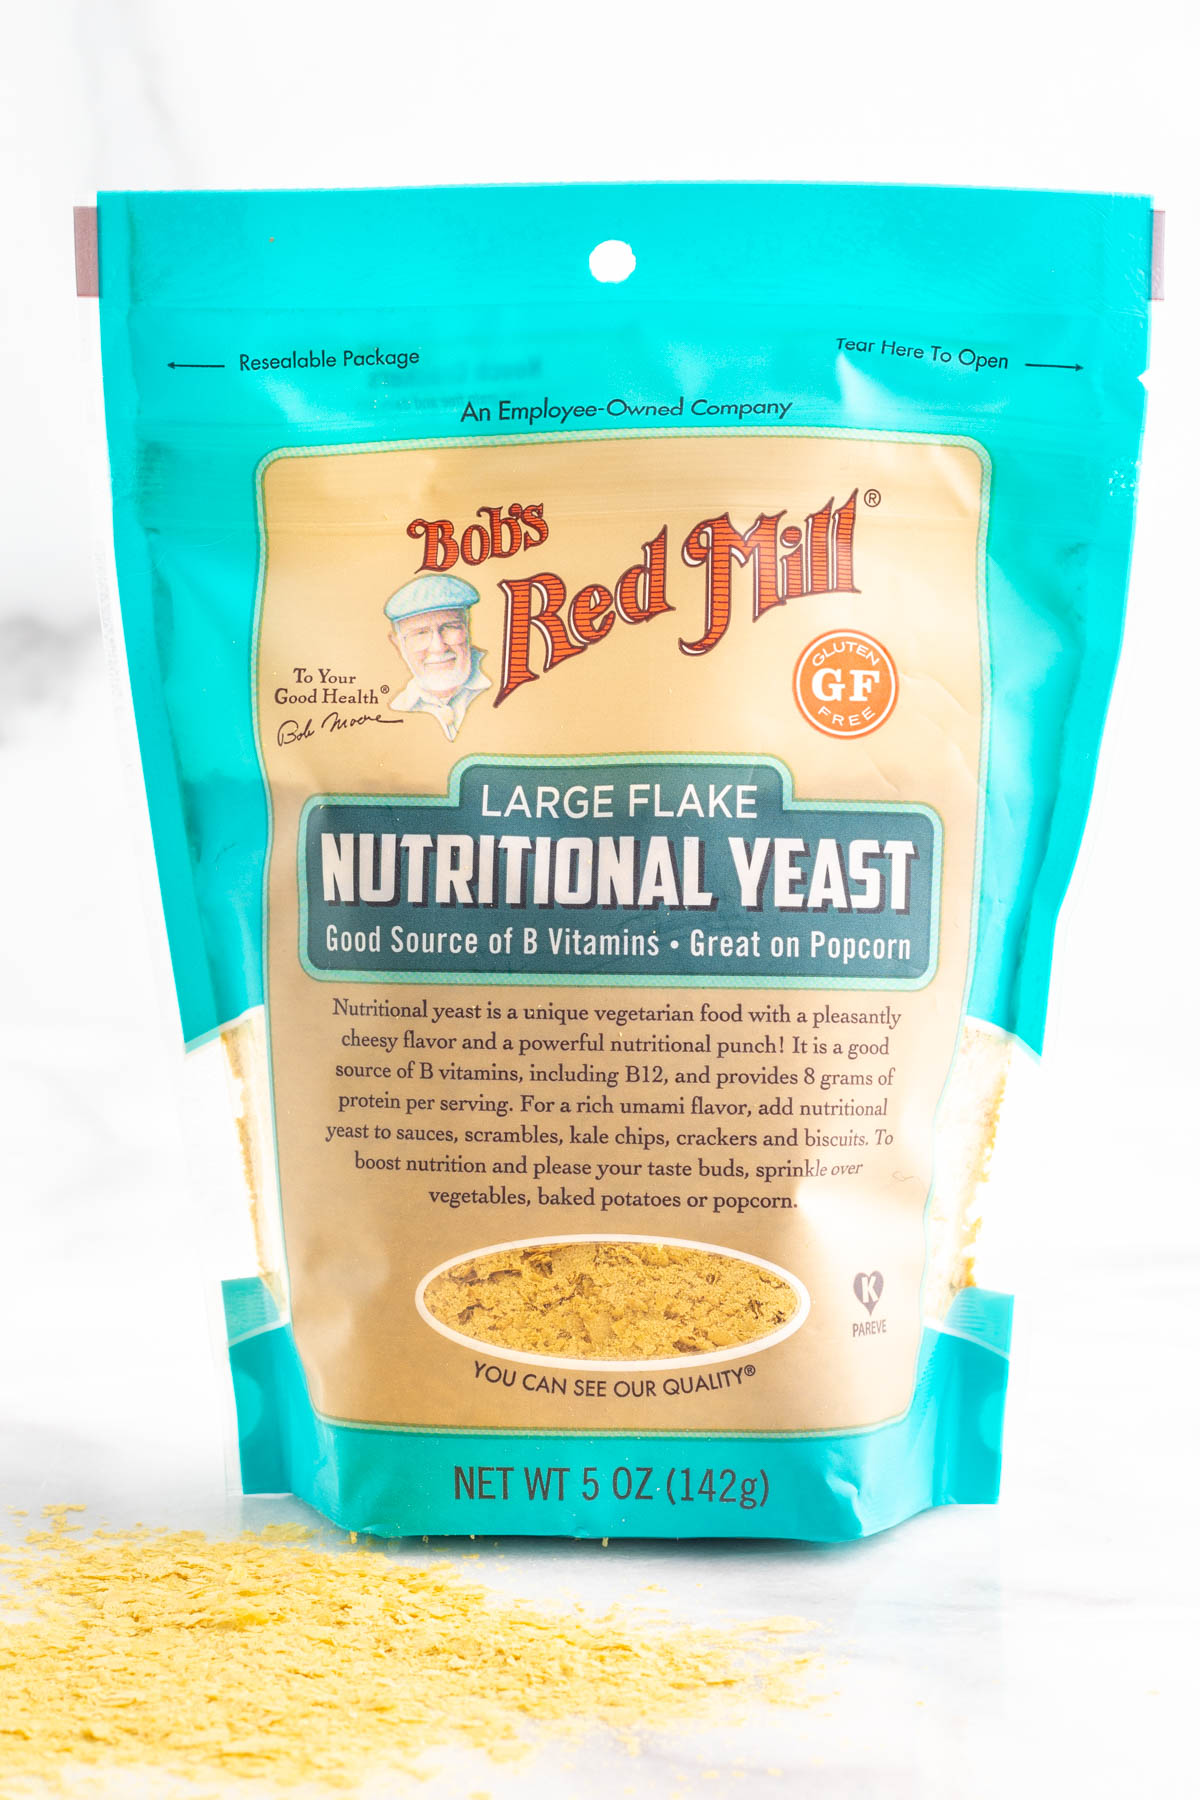 Bob's Red Mill nutritional yeast packaging